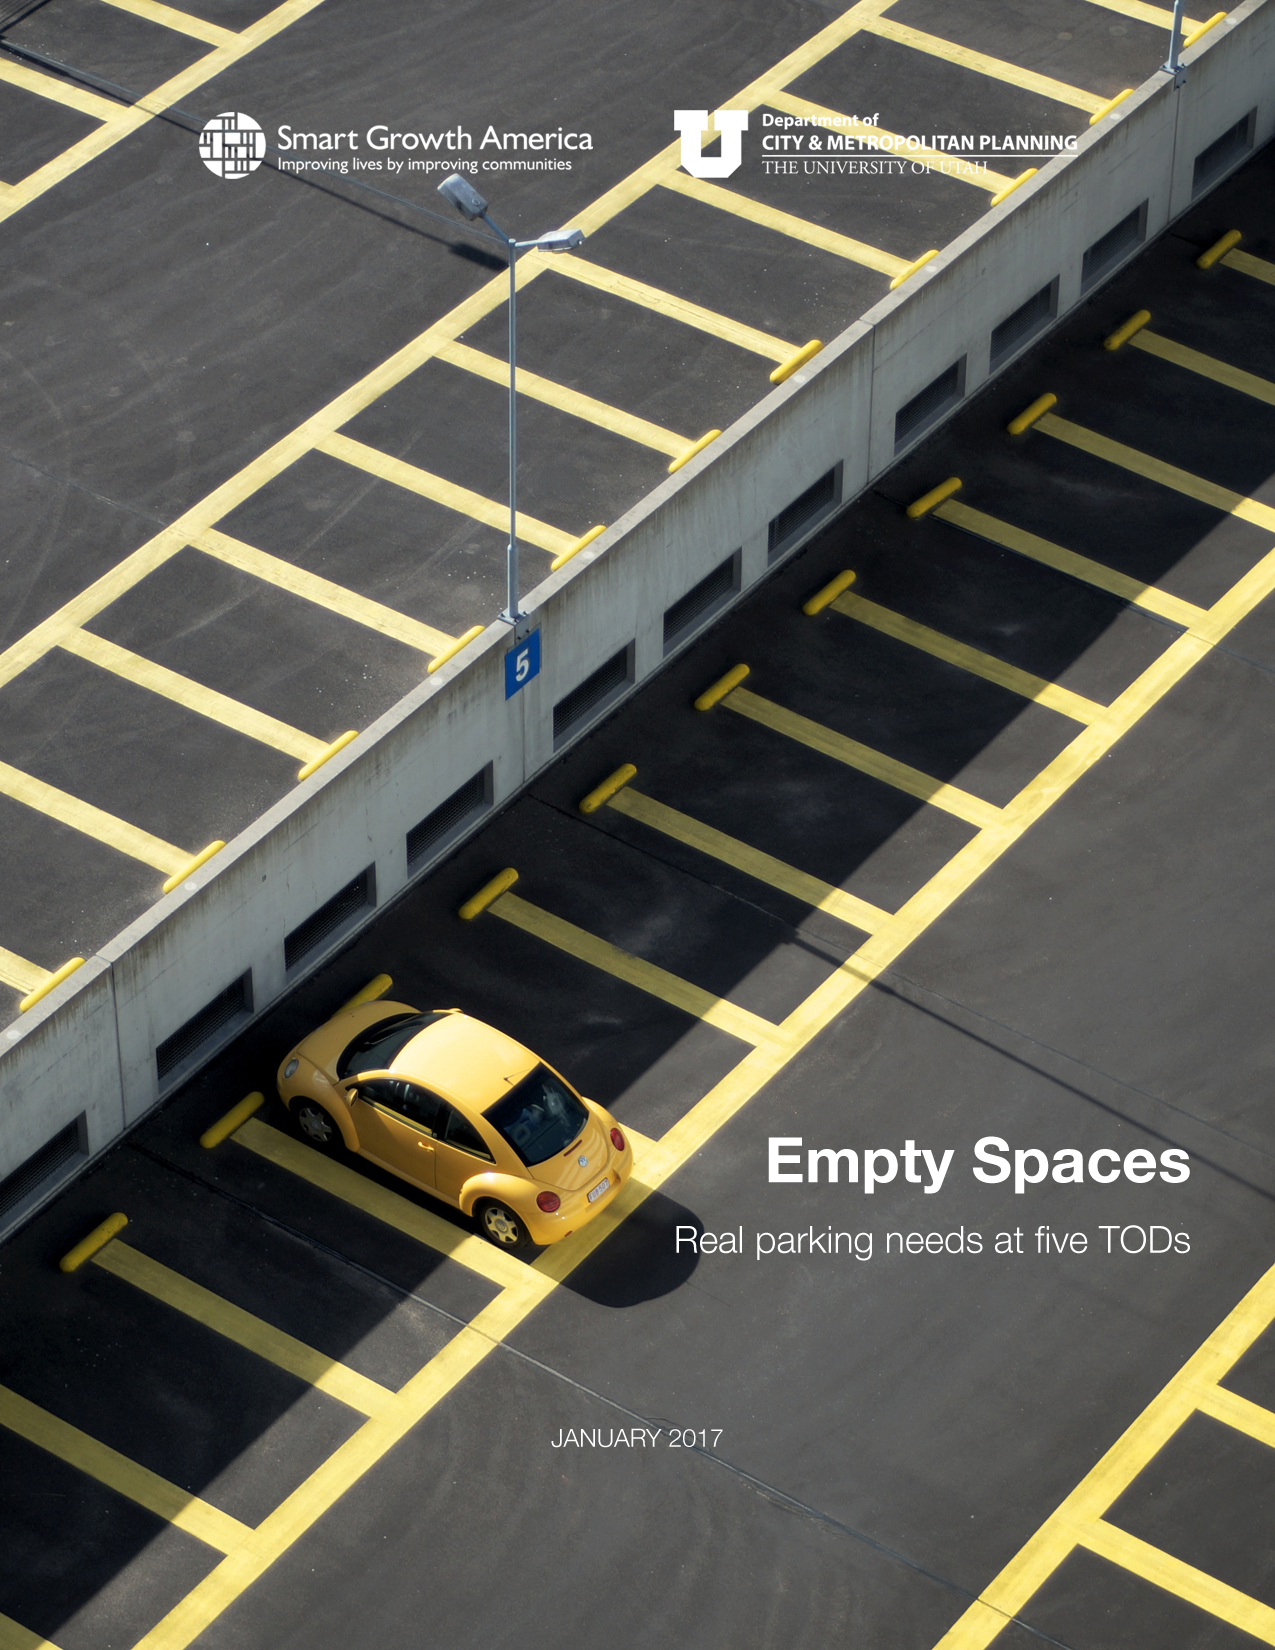 Empty Spaces: Real parking needs at five TODs